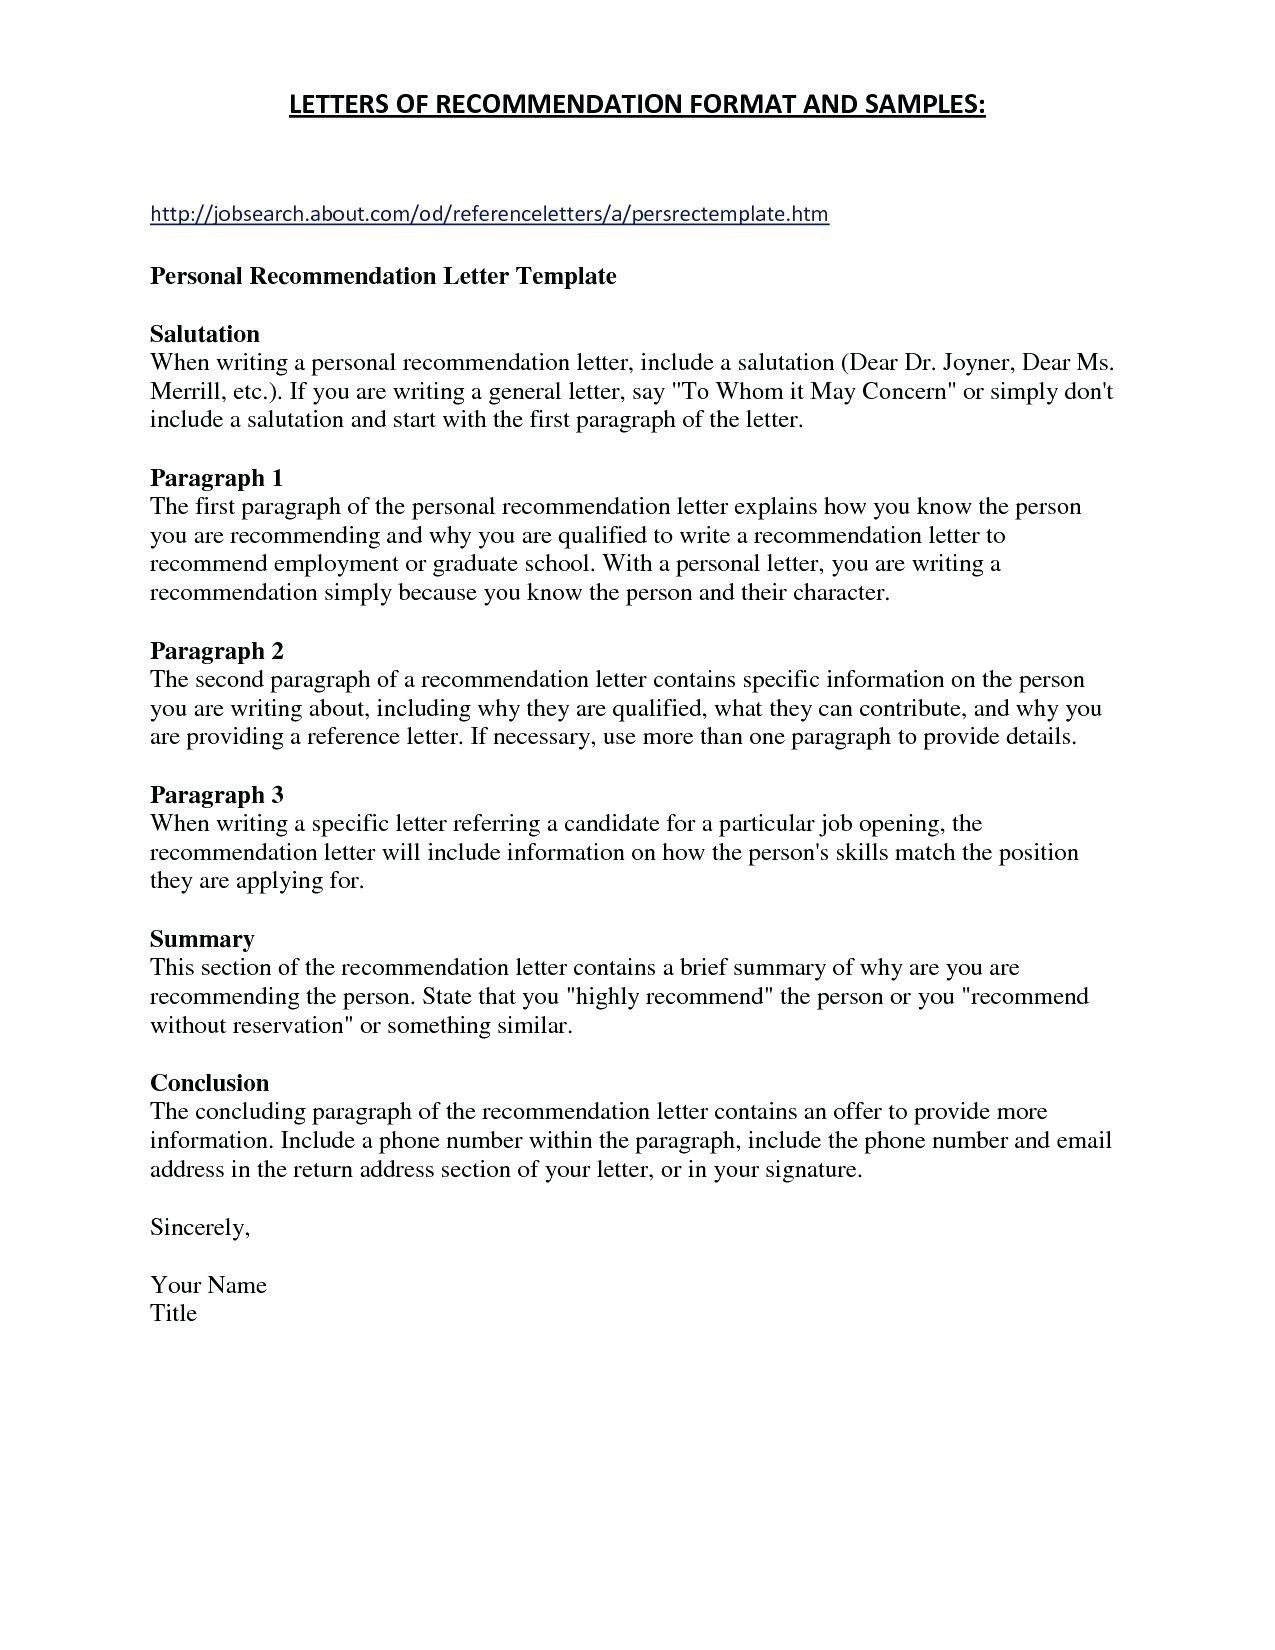 Sample Template For Letter Of Recommendation Collection Throughout Recommendation Report Template